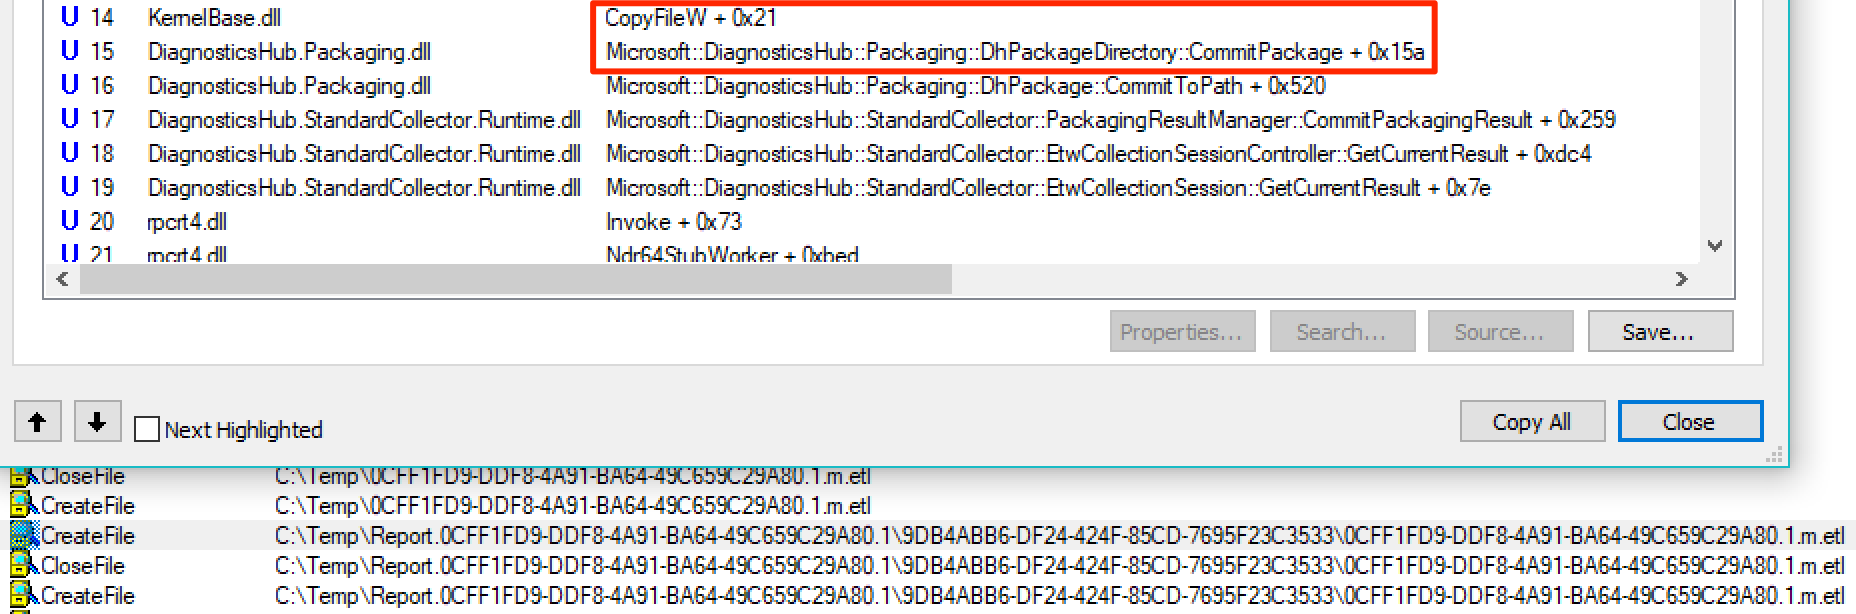 CopyFile operation performed by the Standard Collector Service